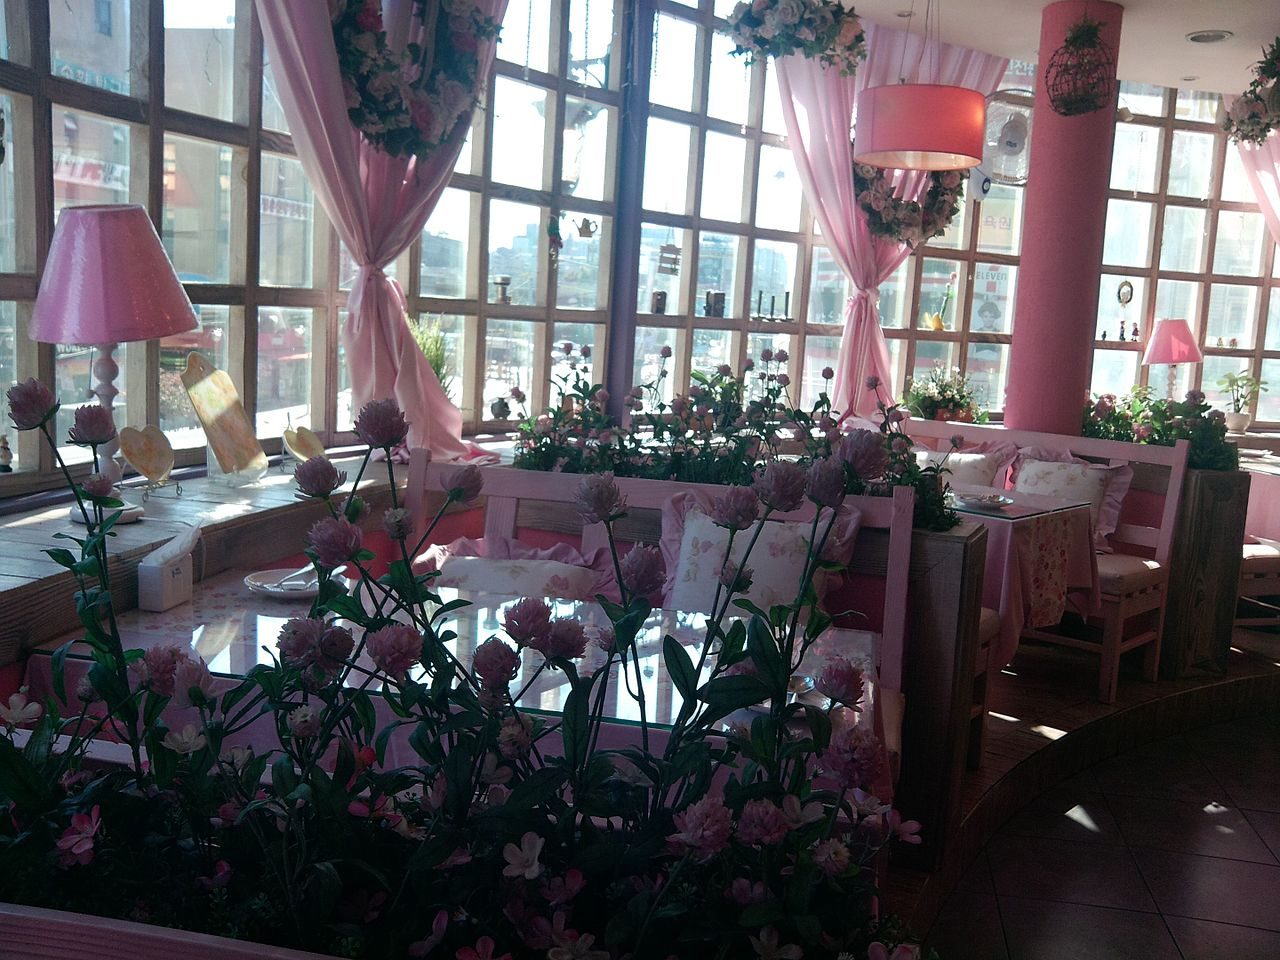 file:ansan korea pink cafe interior - wikimedia commons